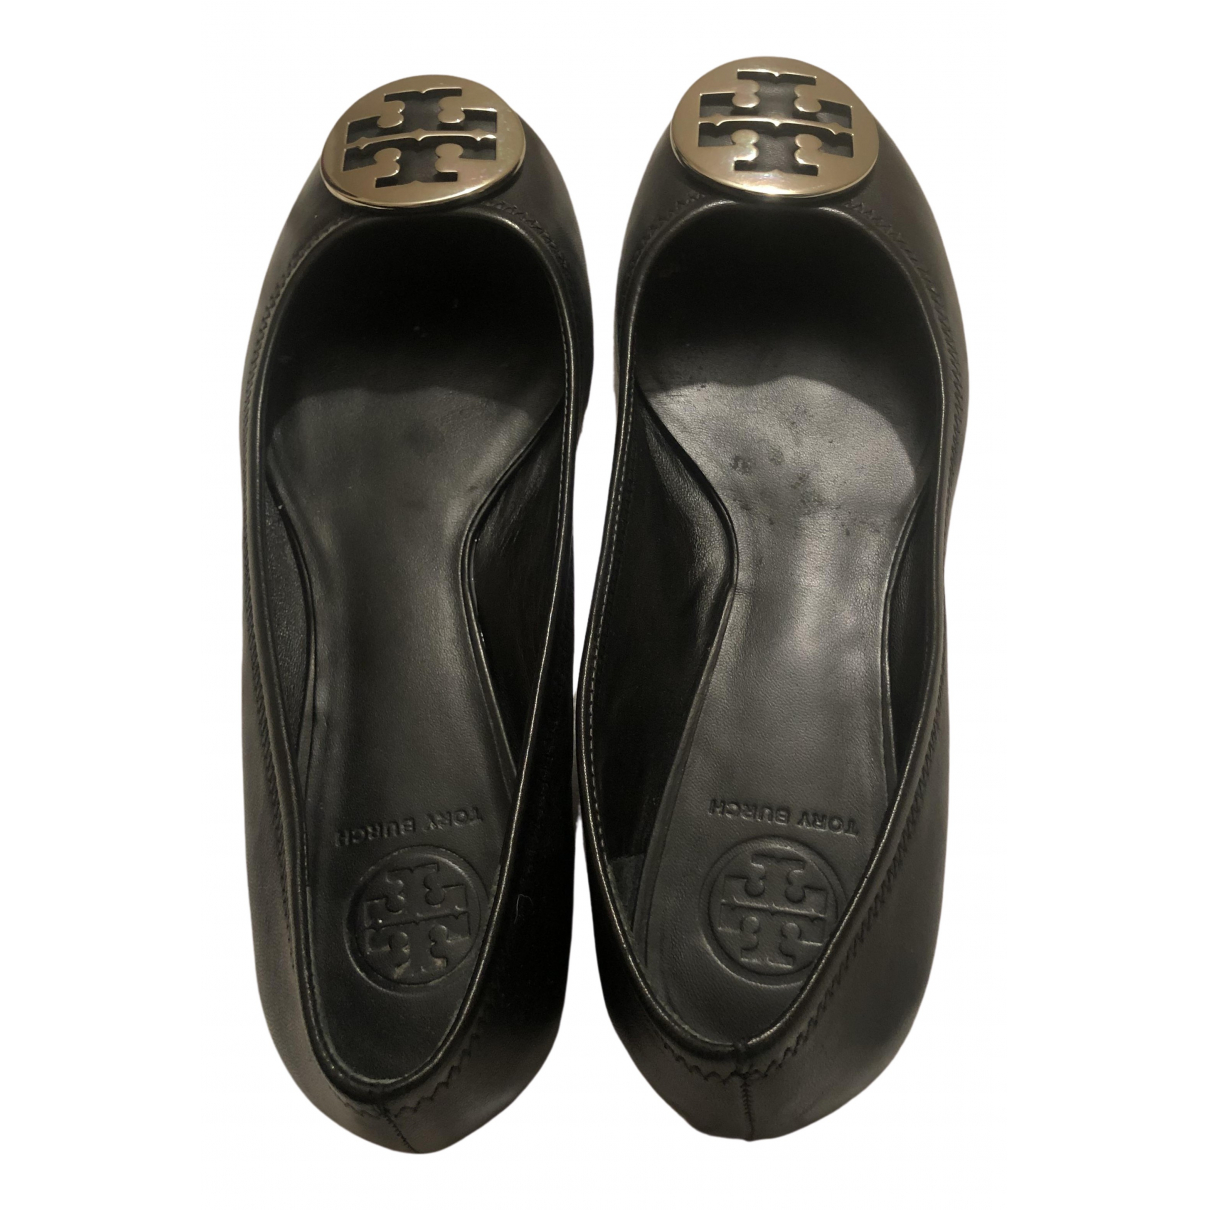 Tory Burch \N Black Leather Ballet flats for Women 9 US